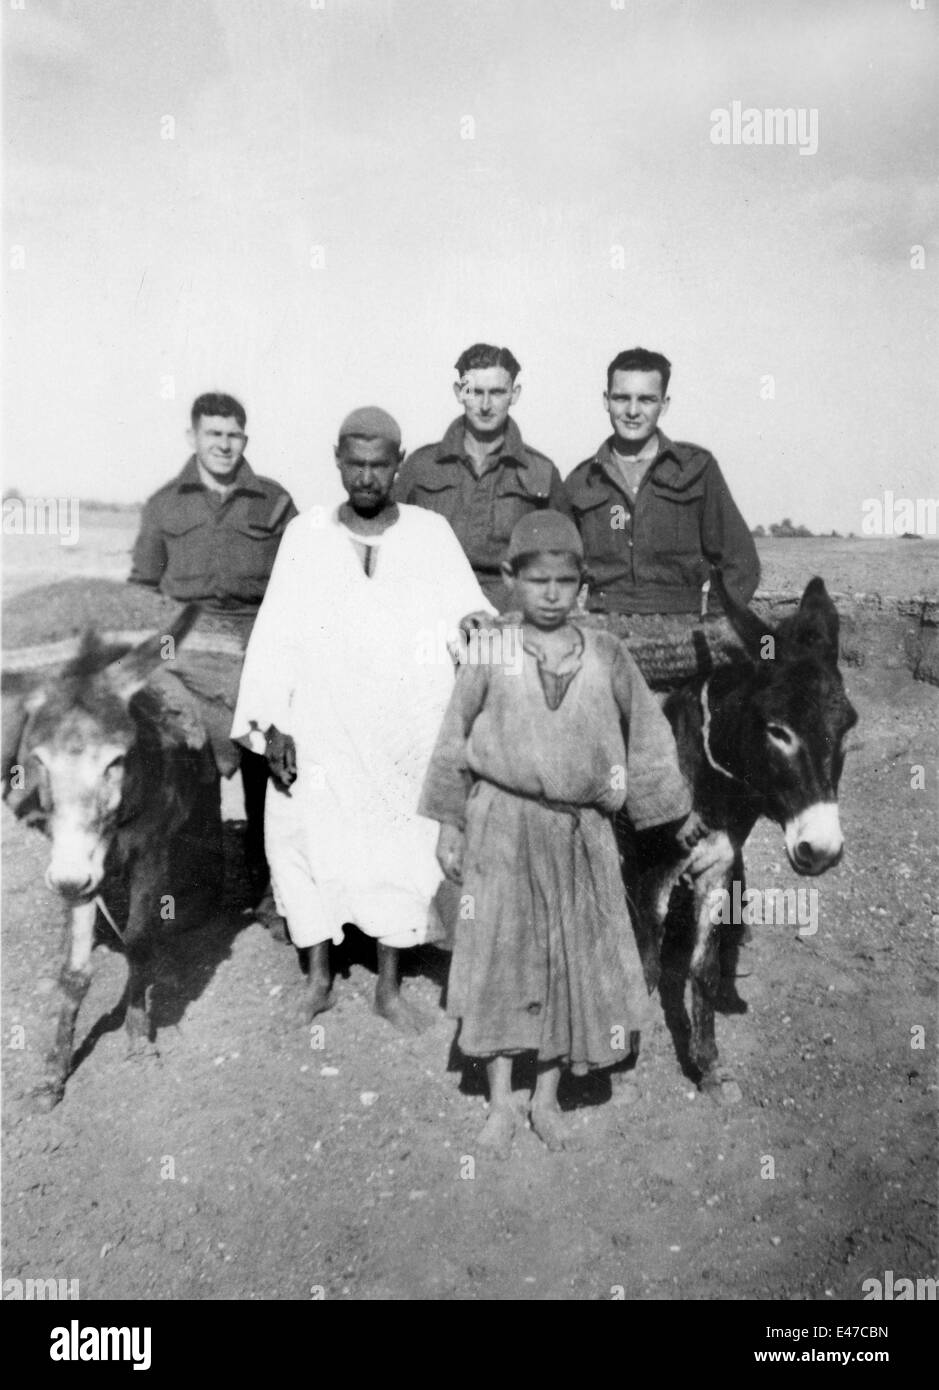 British REME soldiers with locals father and son with donkeys at Tel-el-Kebir Egypt 1943 World War Two 2 - Stock Image